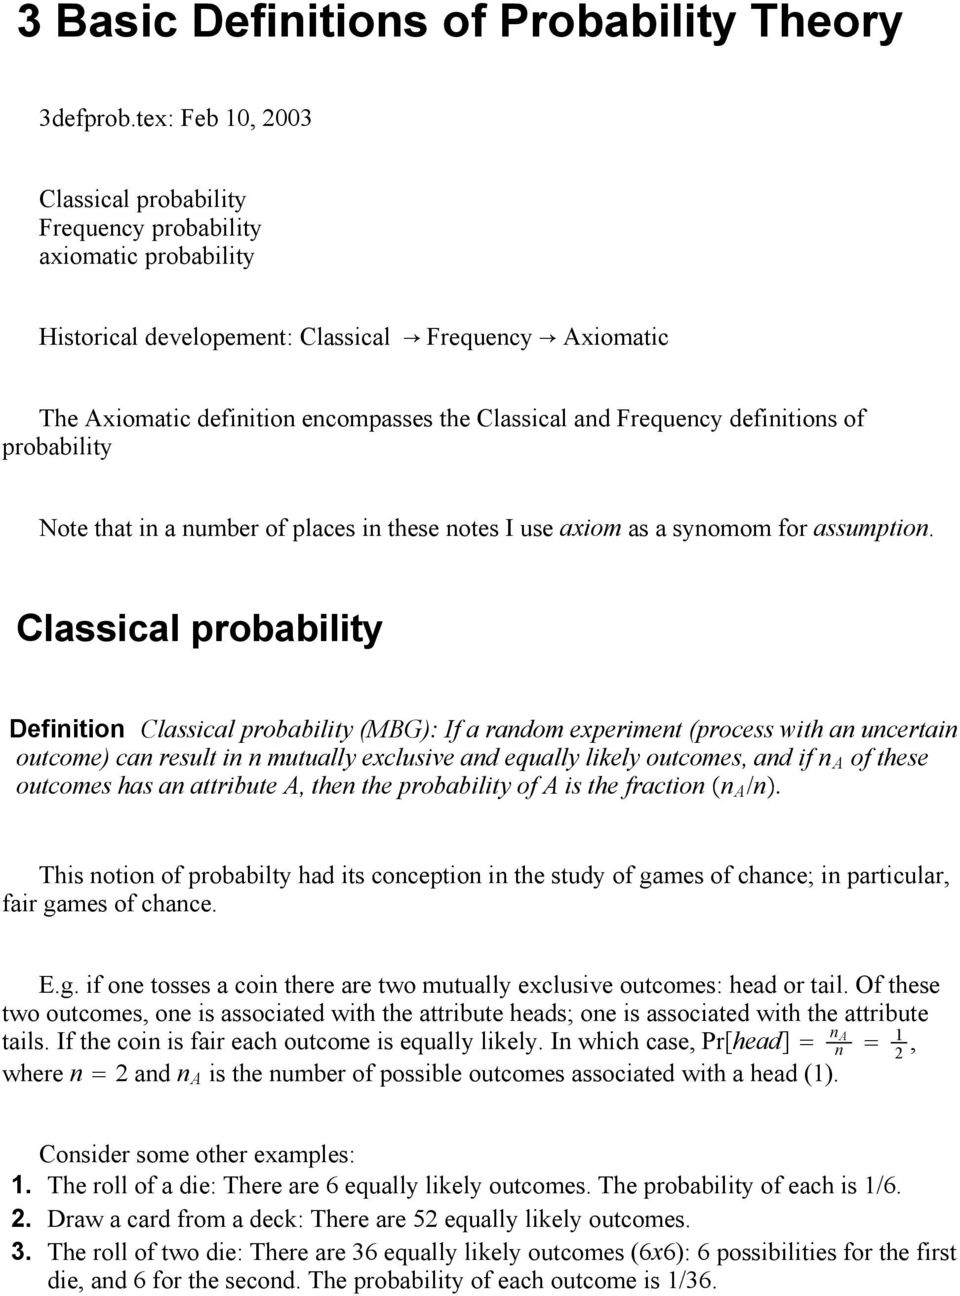 defiitios of probability Note that i a umber of places i these otes I use axiom as a syomom for assumptio.